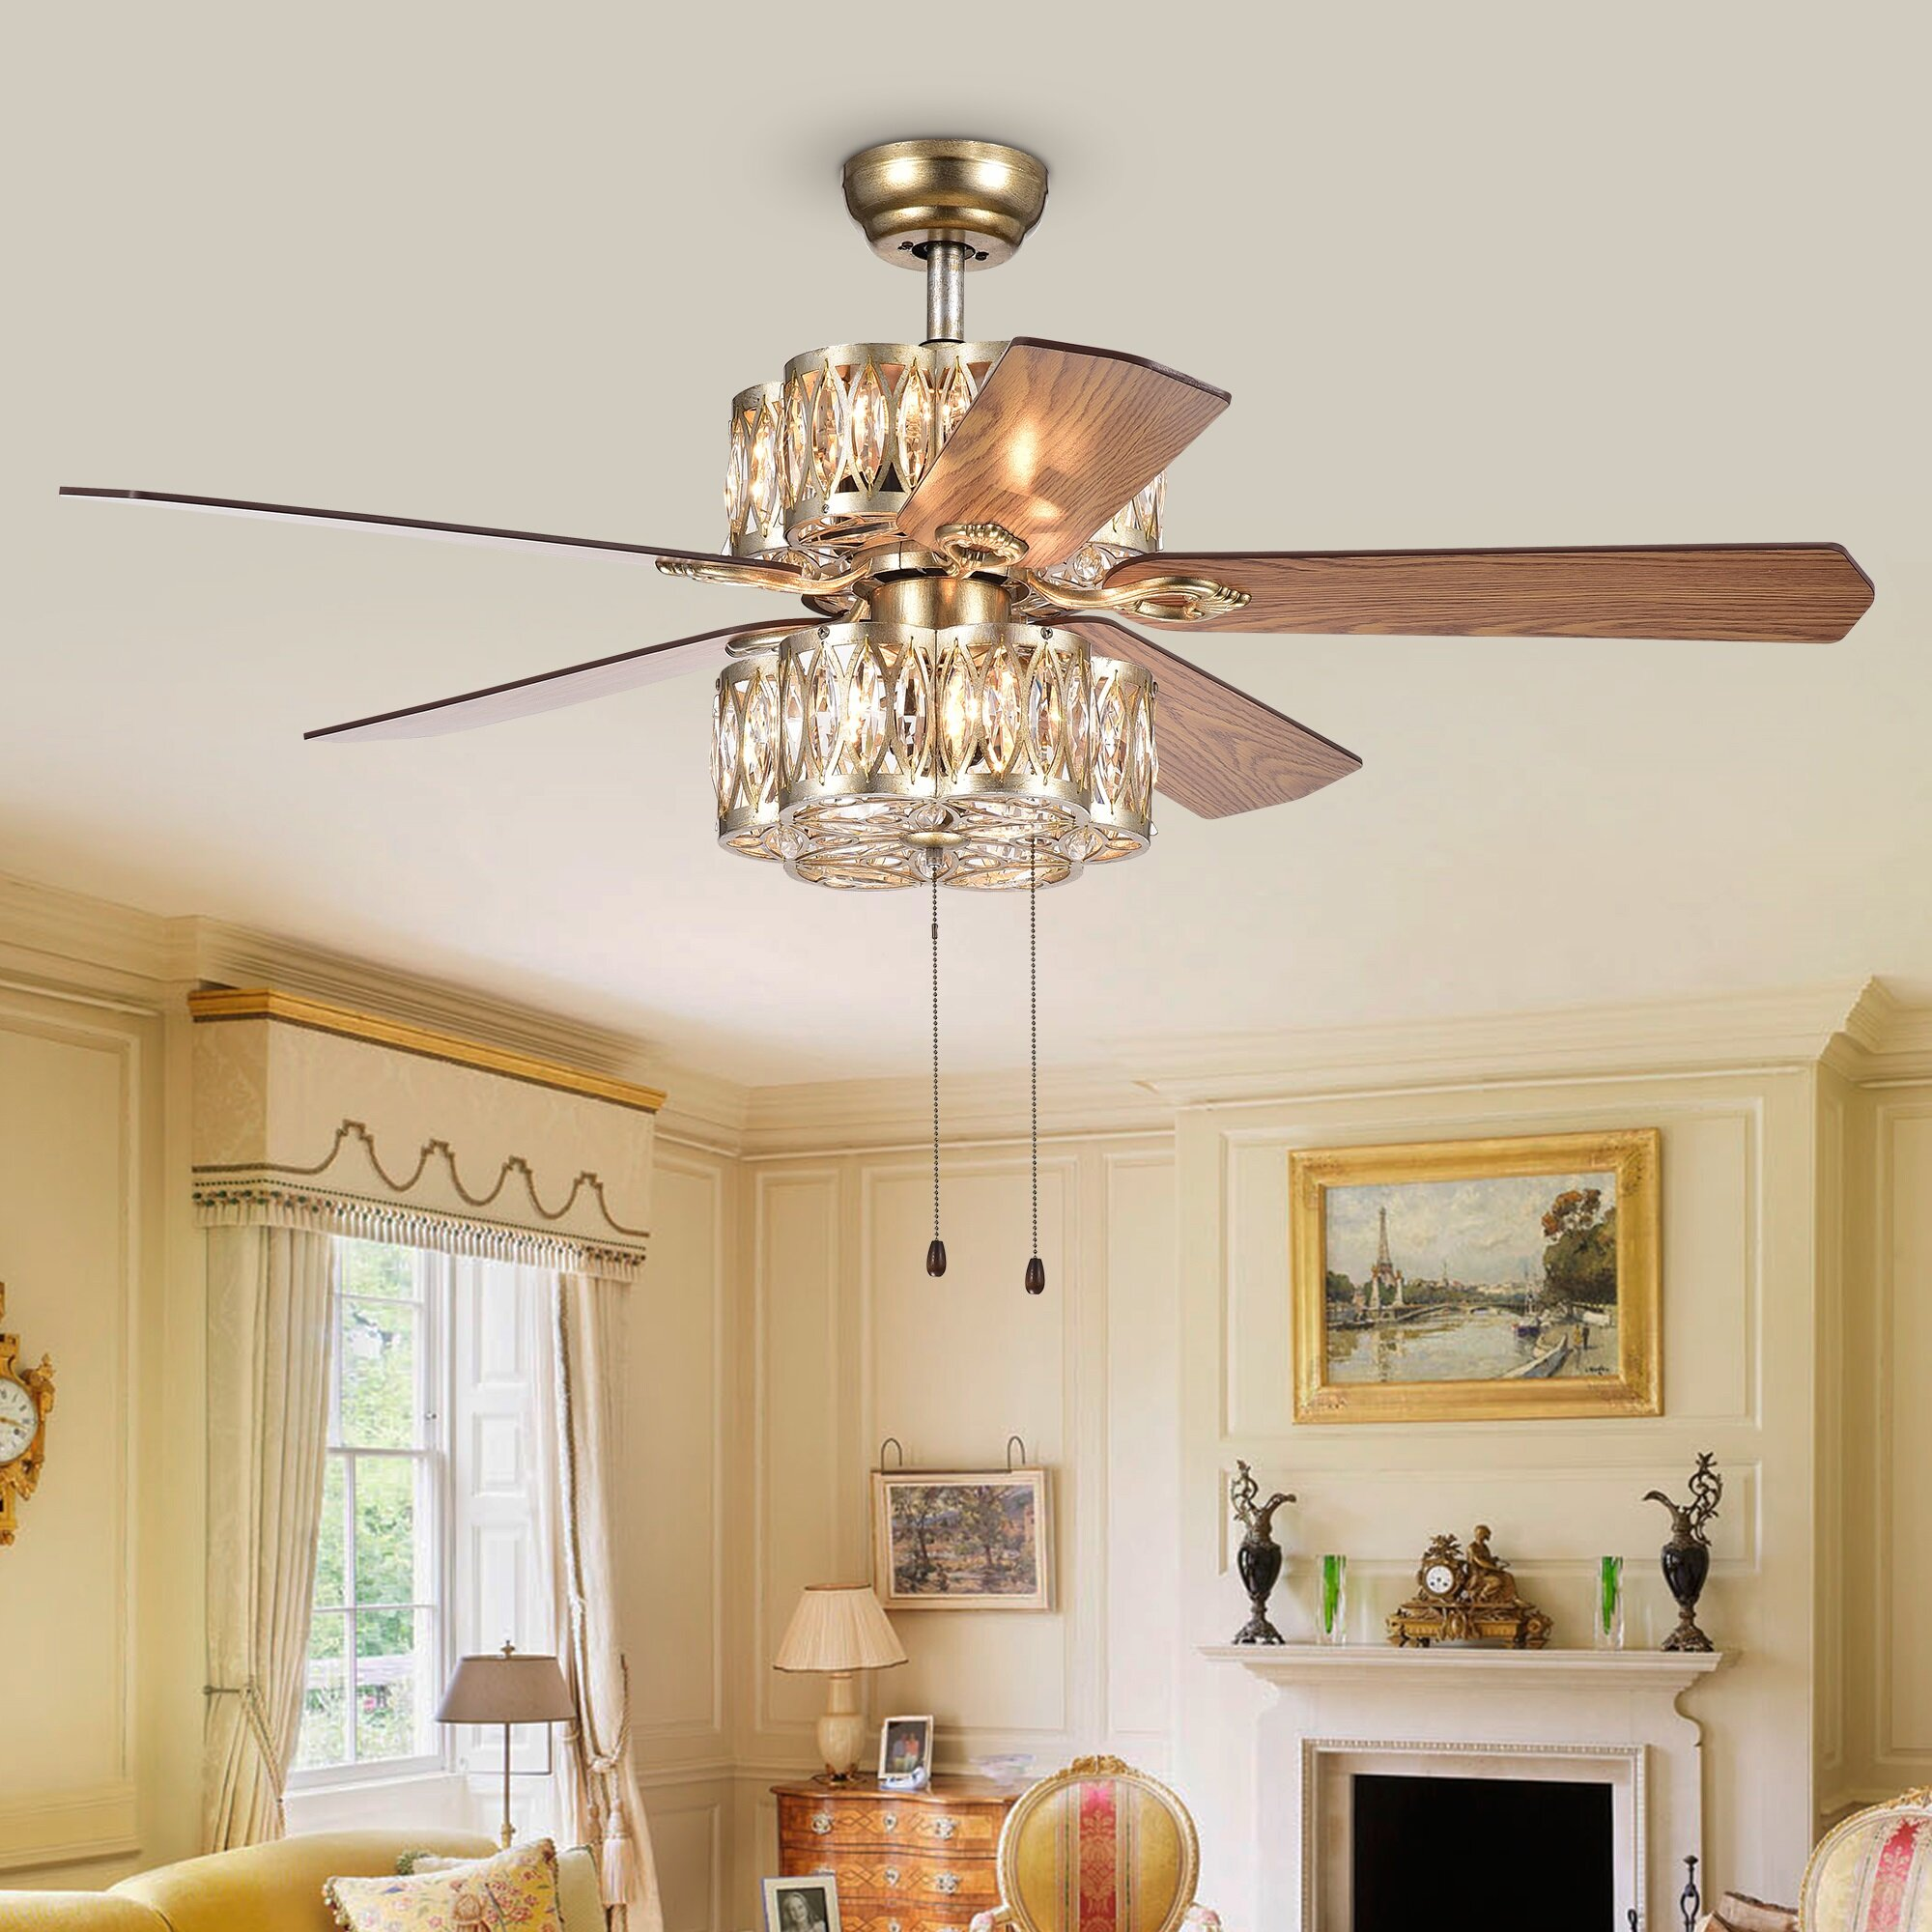 chrome ceiling with blade inch light chandelier crystal product optional shipping free garden fan today wyllow overstock home remote